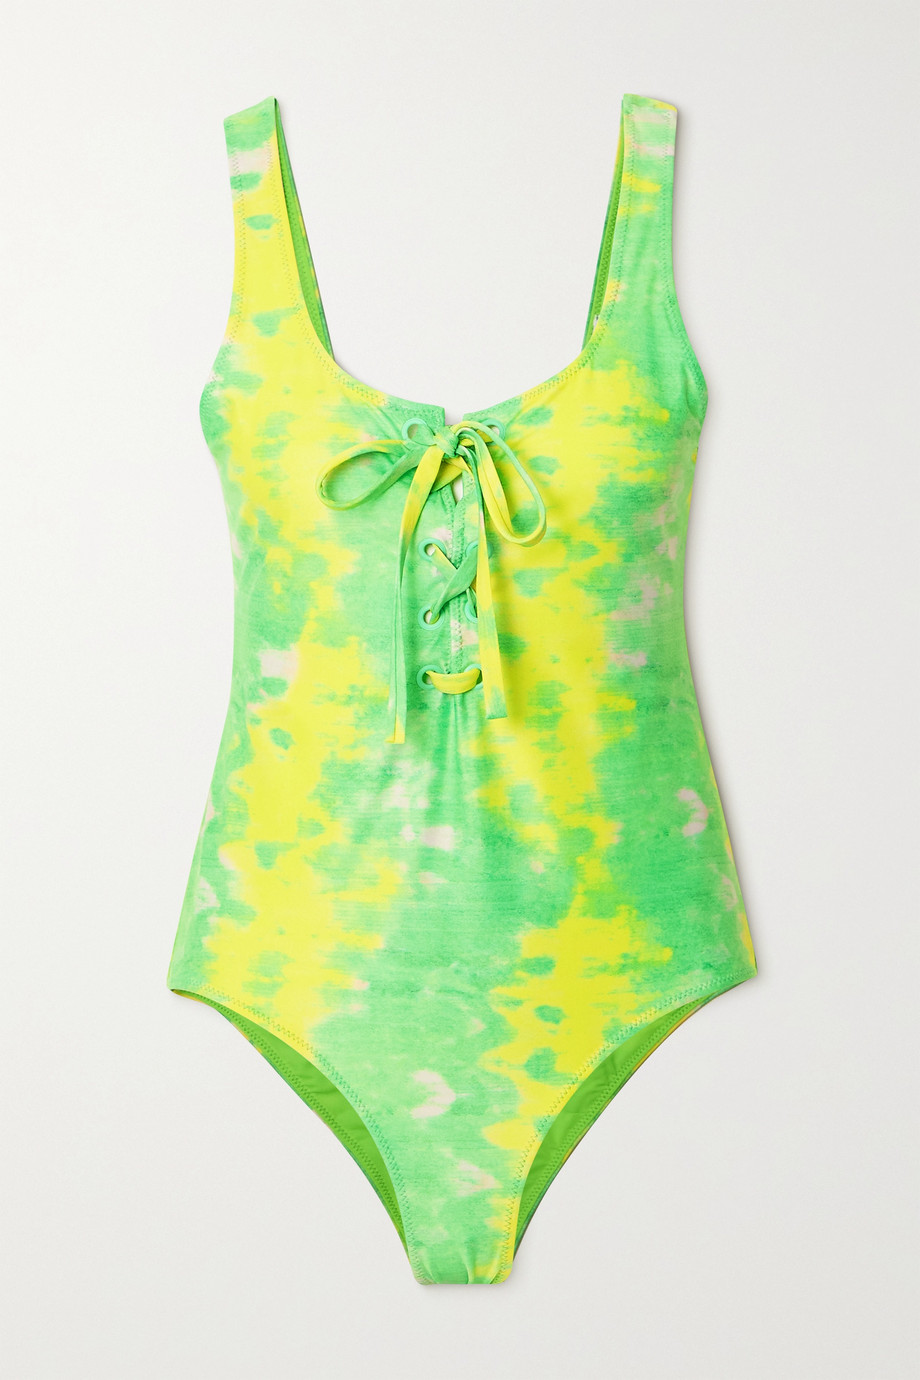 GANNI + NET SUSTAIN Kelly lace-up printed recycled swimsuit